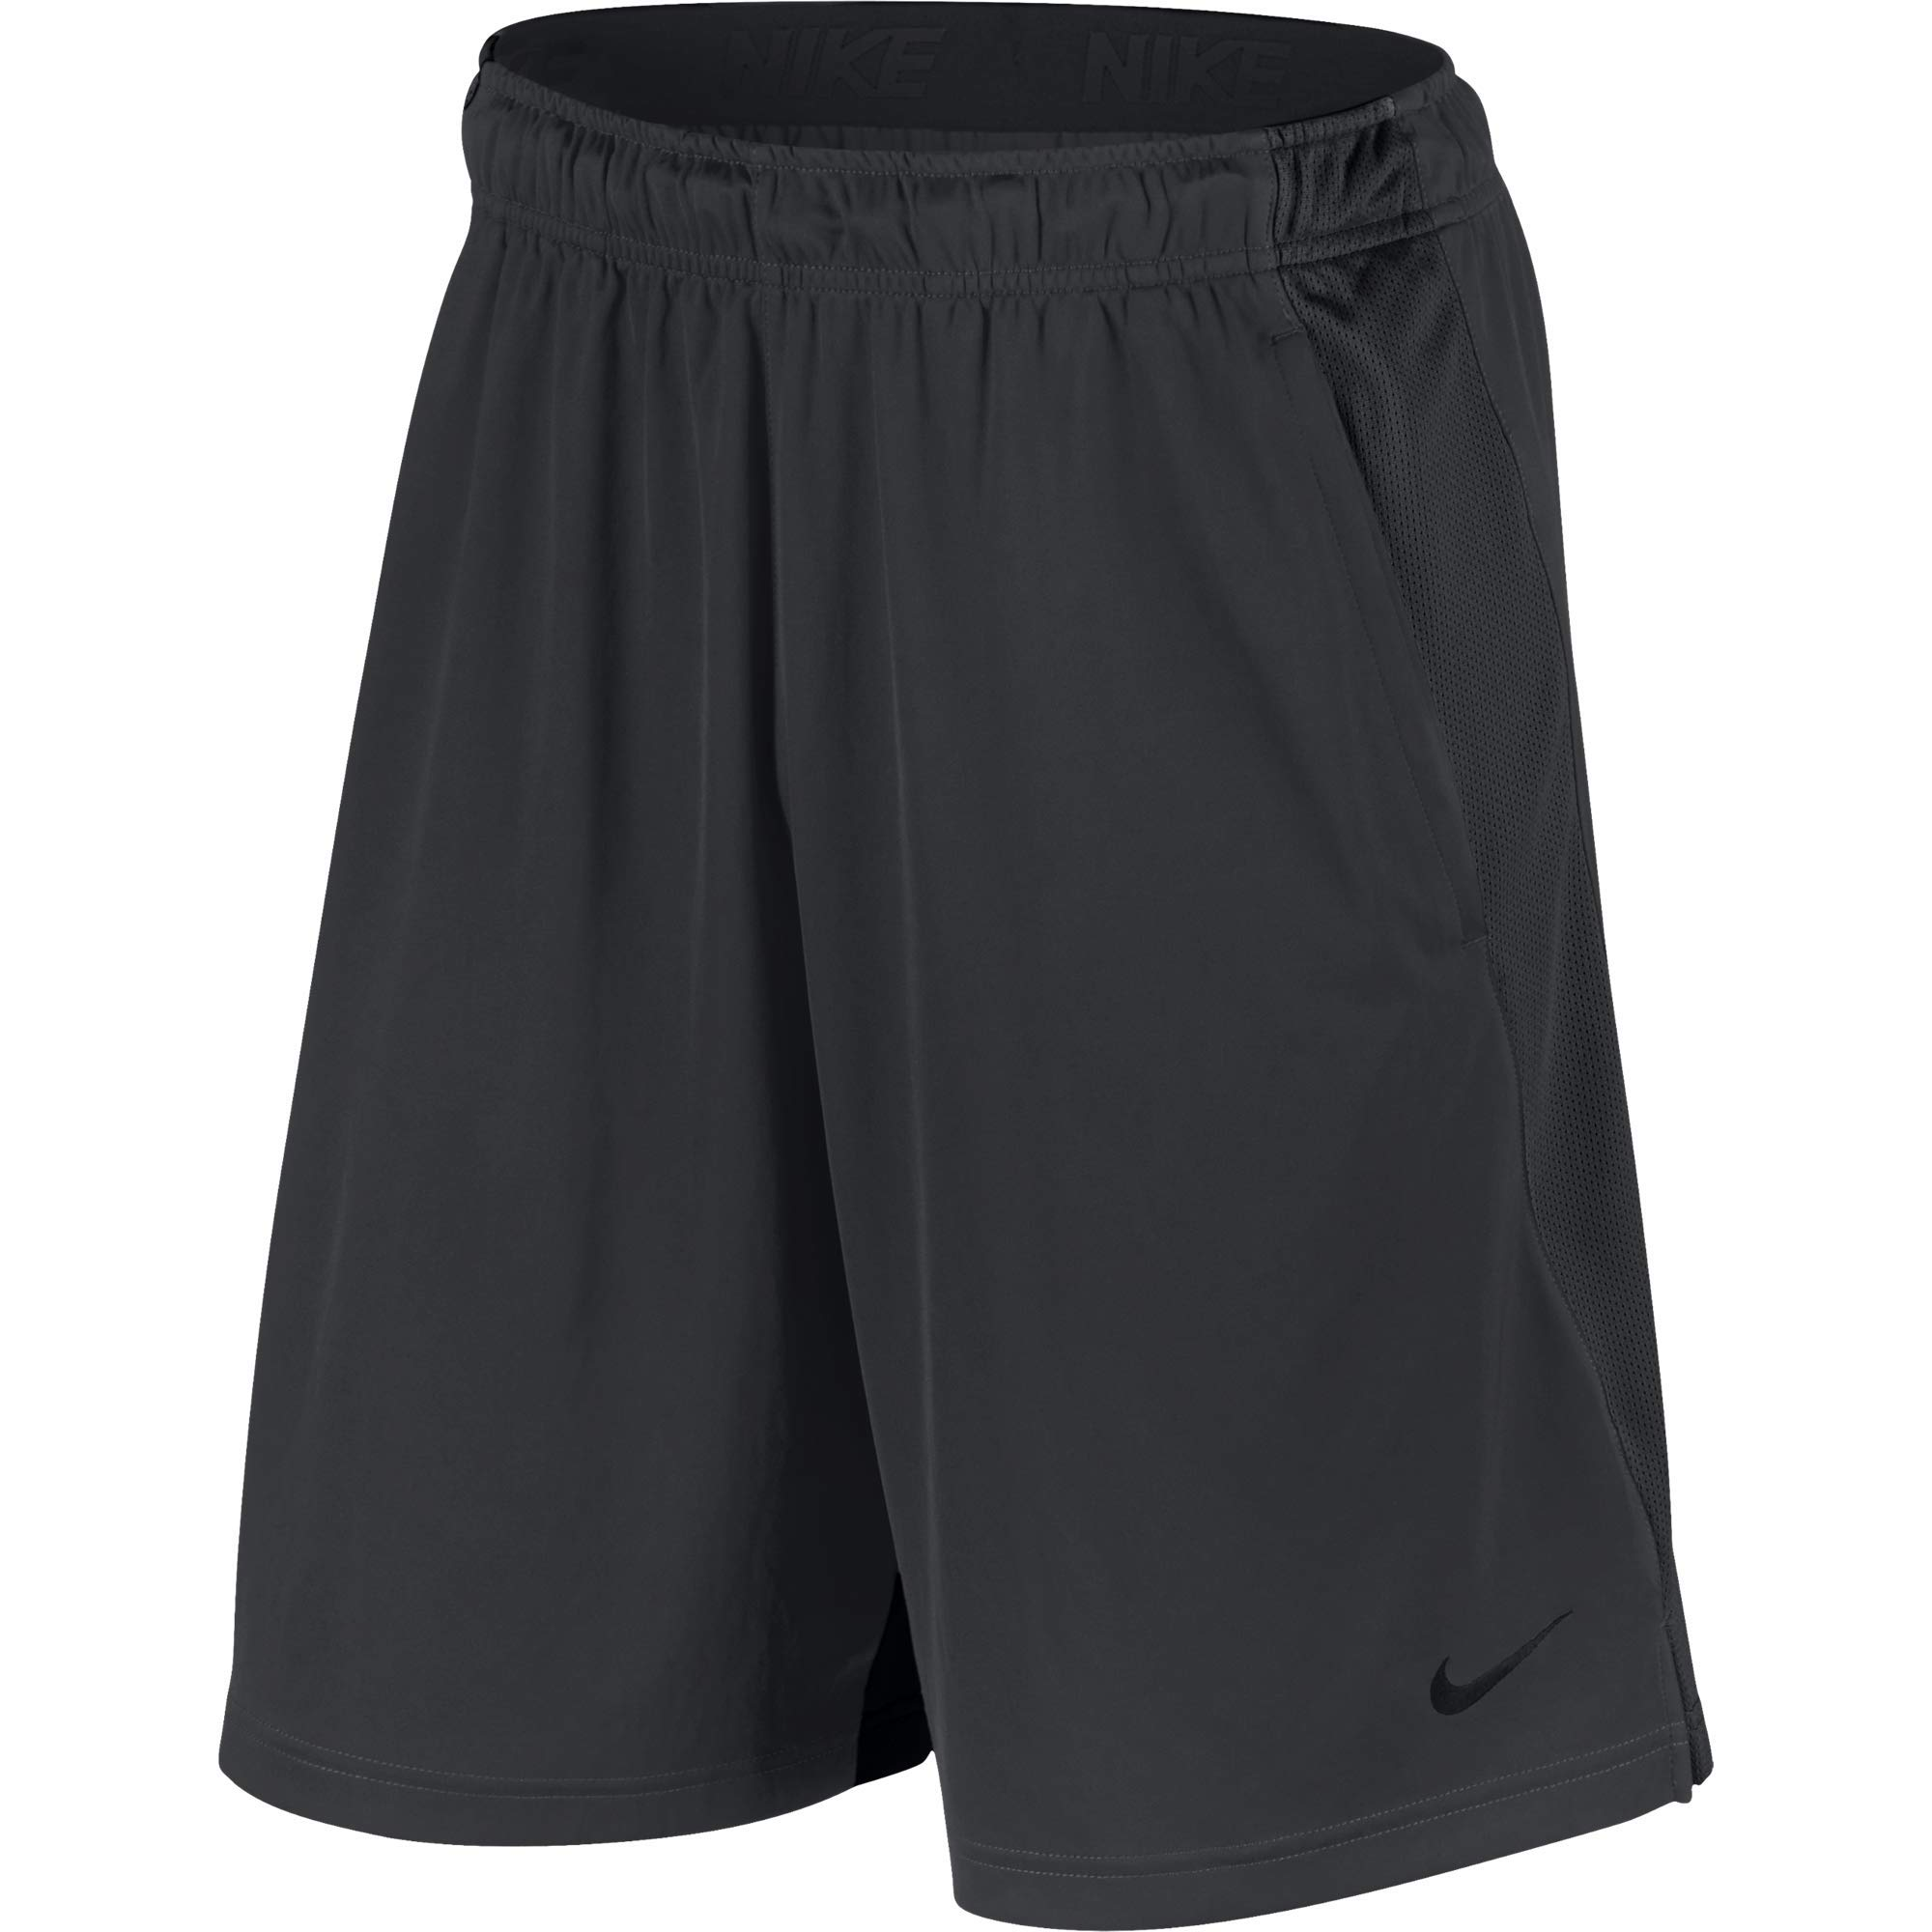 Nike Men's Dry Training Shorts, Anthracite/Anthracite/Black, X-Large by Nike